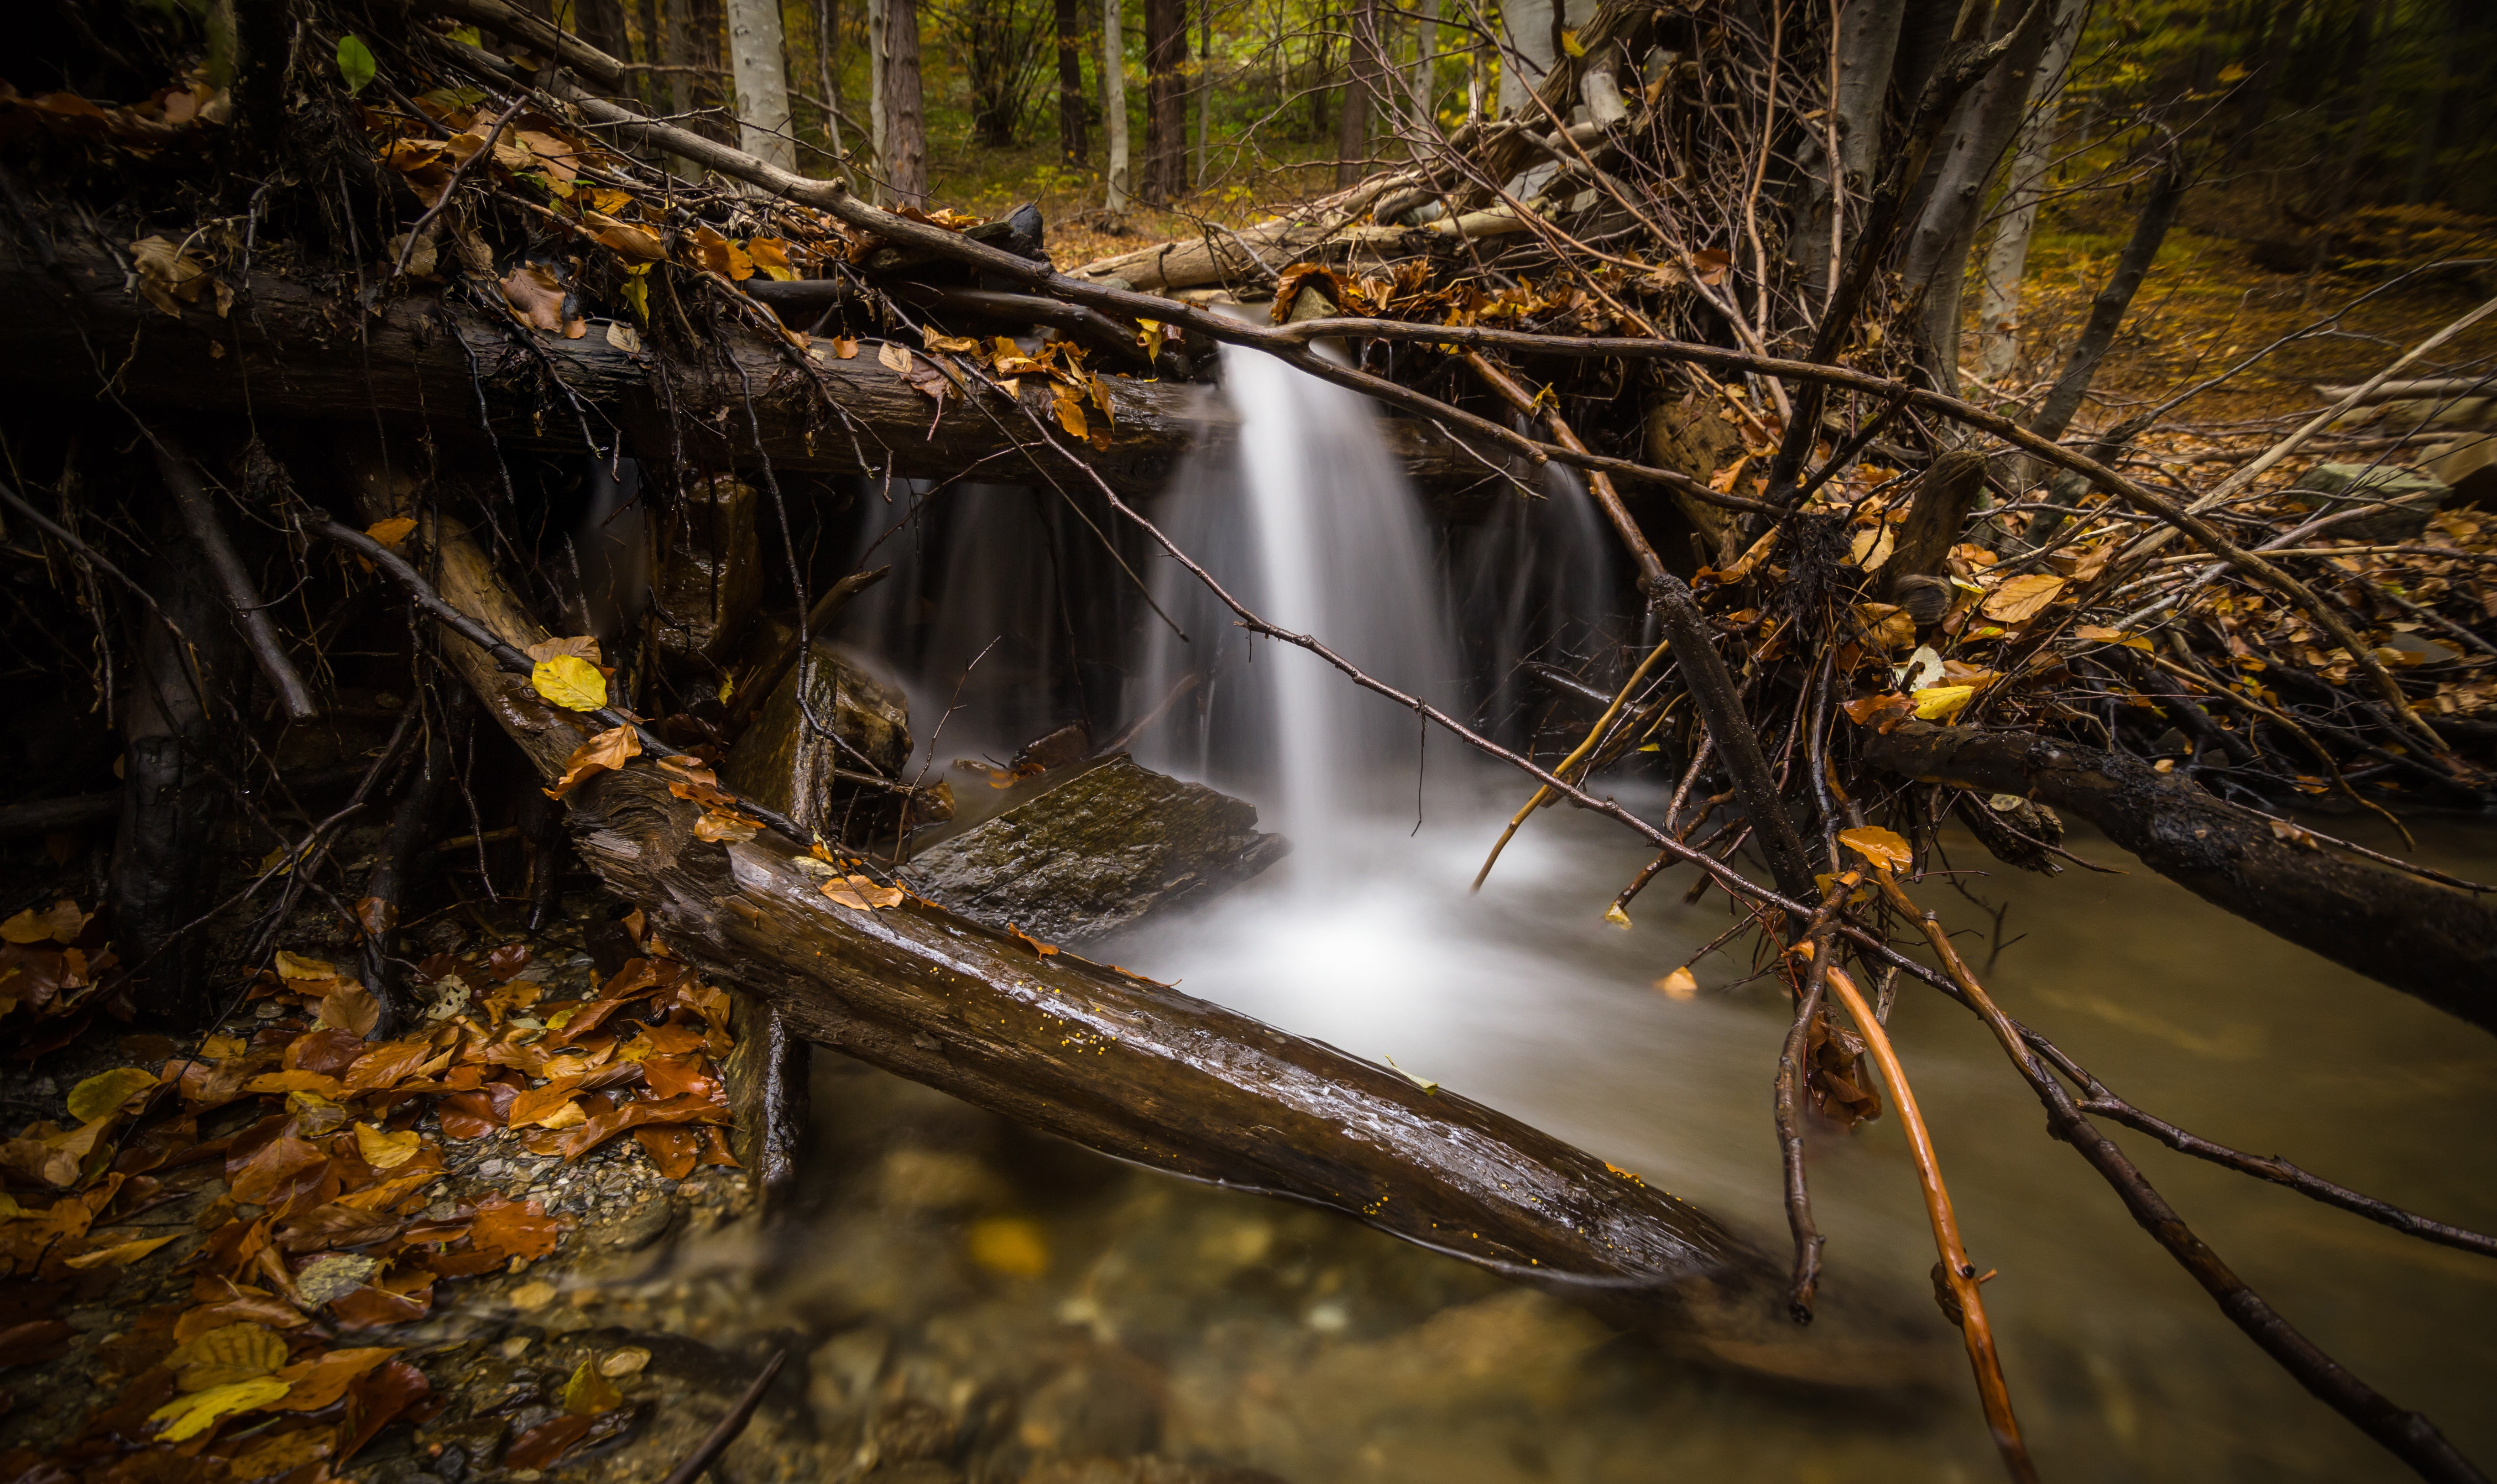 Time Lapse Photography of Falls Surrounded by Trees, Time-lapse, Stream, Tree, River, HQ Photo